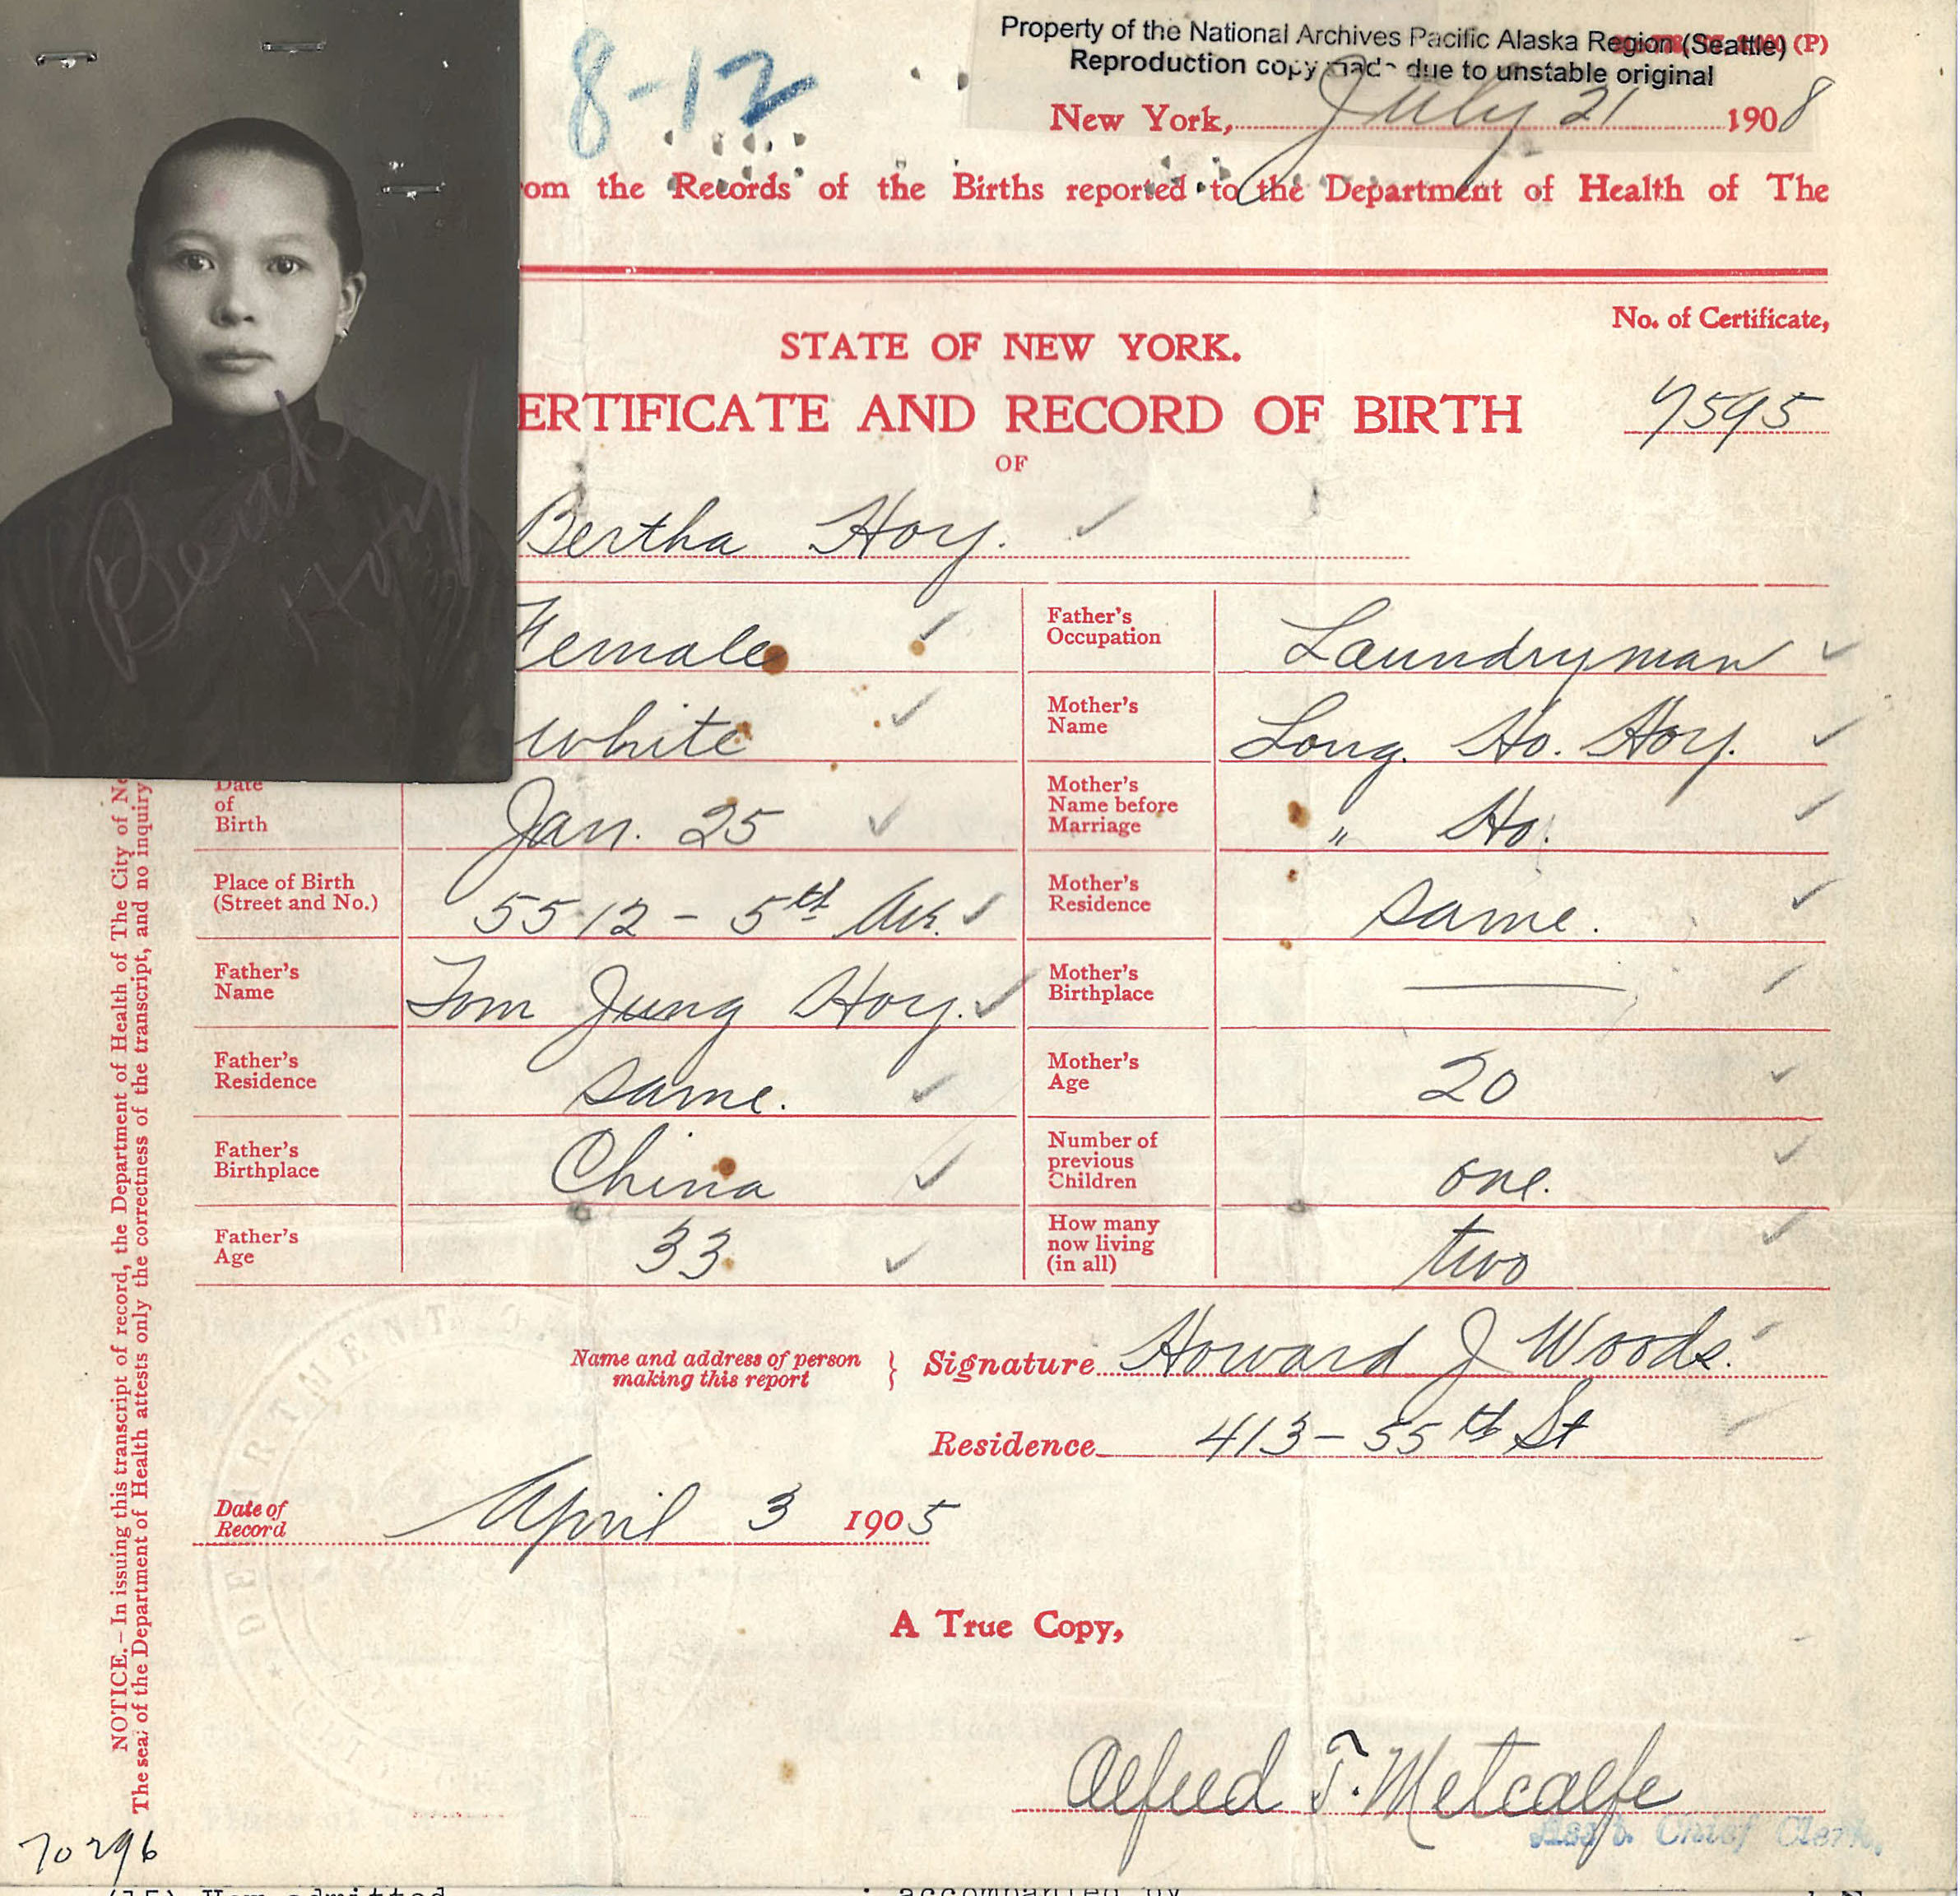 October 2016 chinese exclusion act case files birth certificate for bertha hoy 1905 yelopaper Choice Image